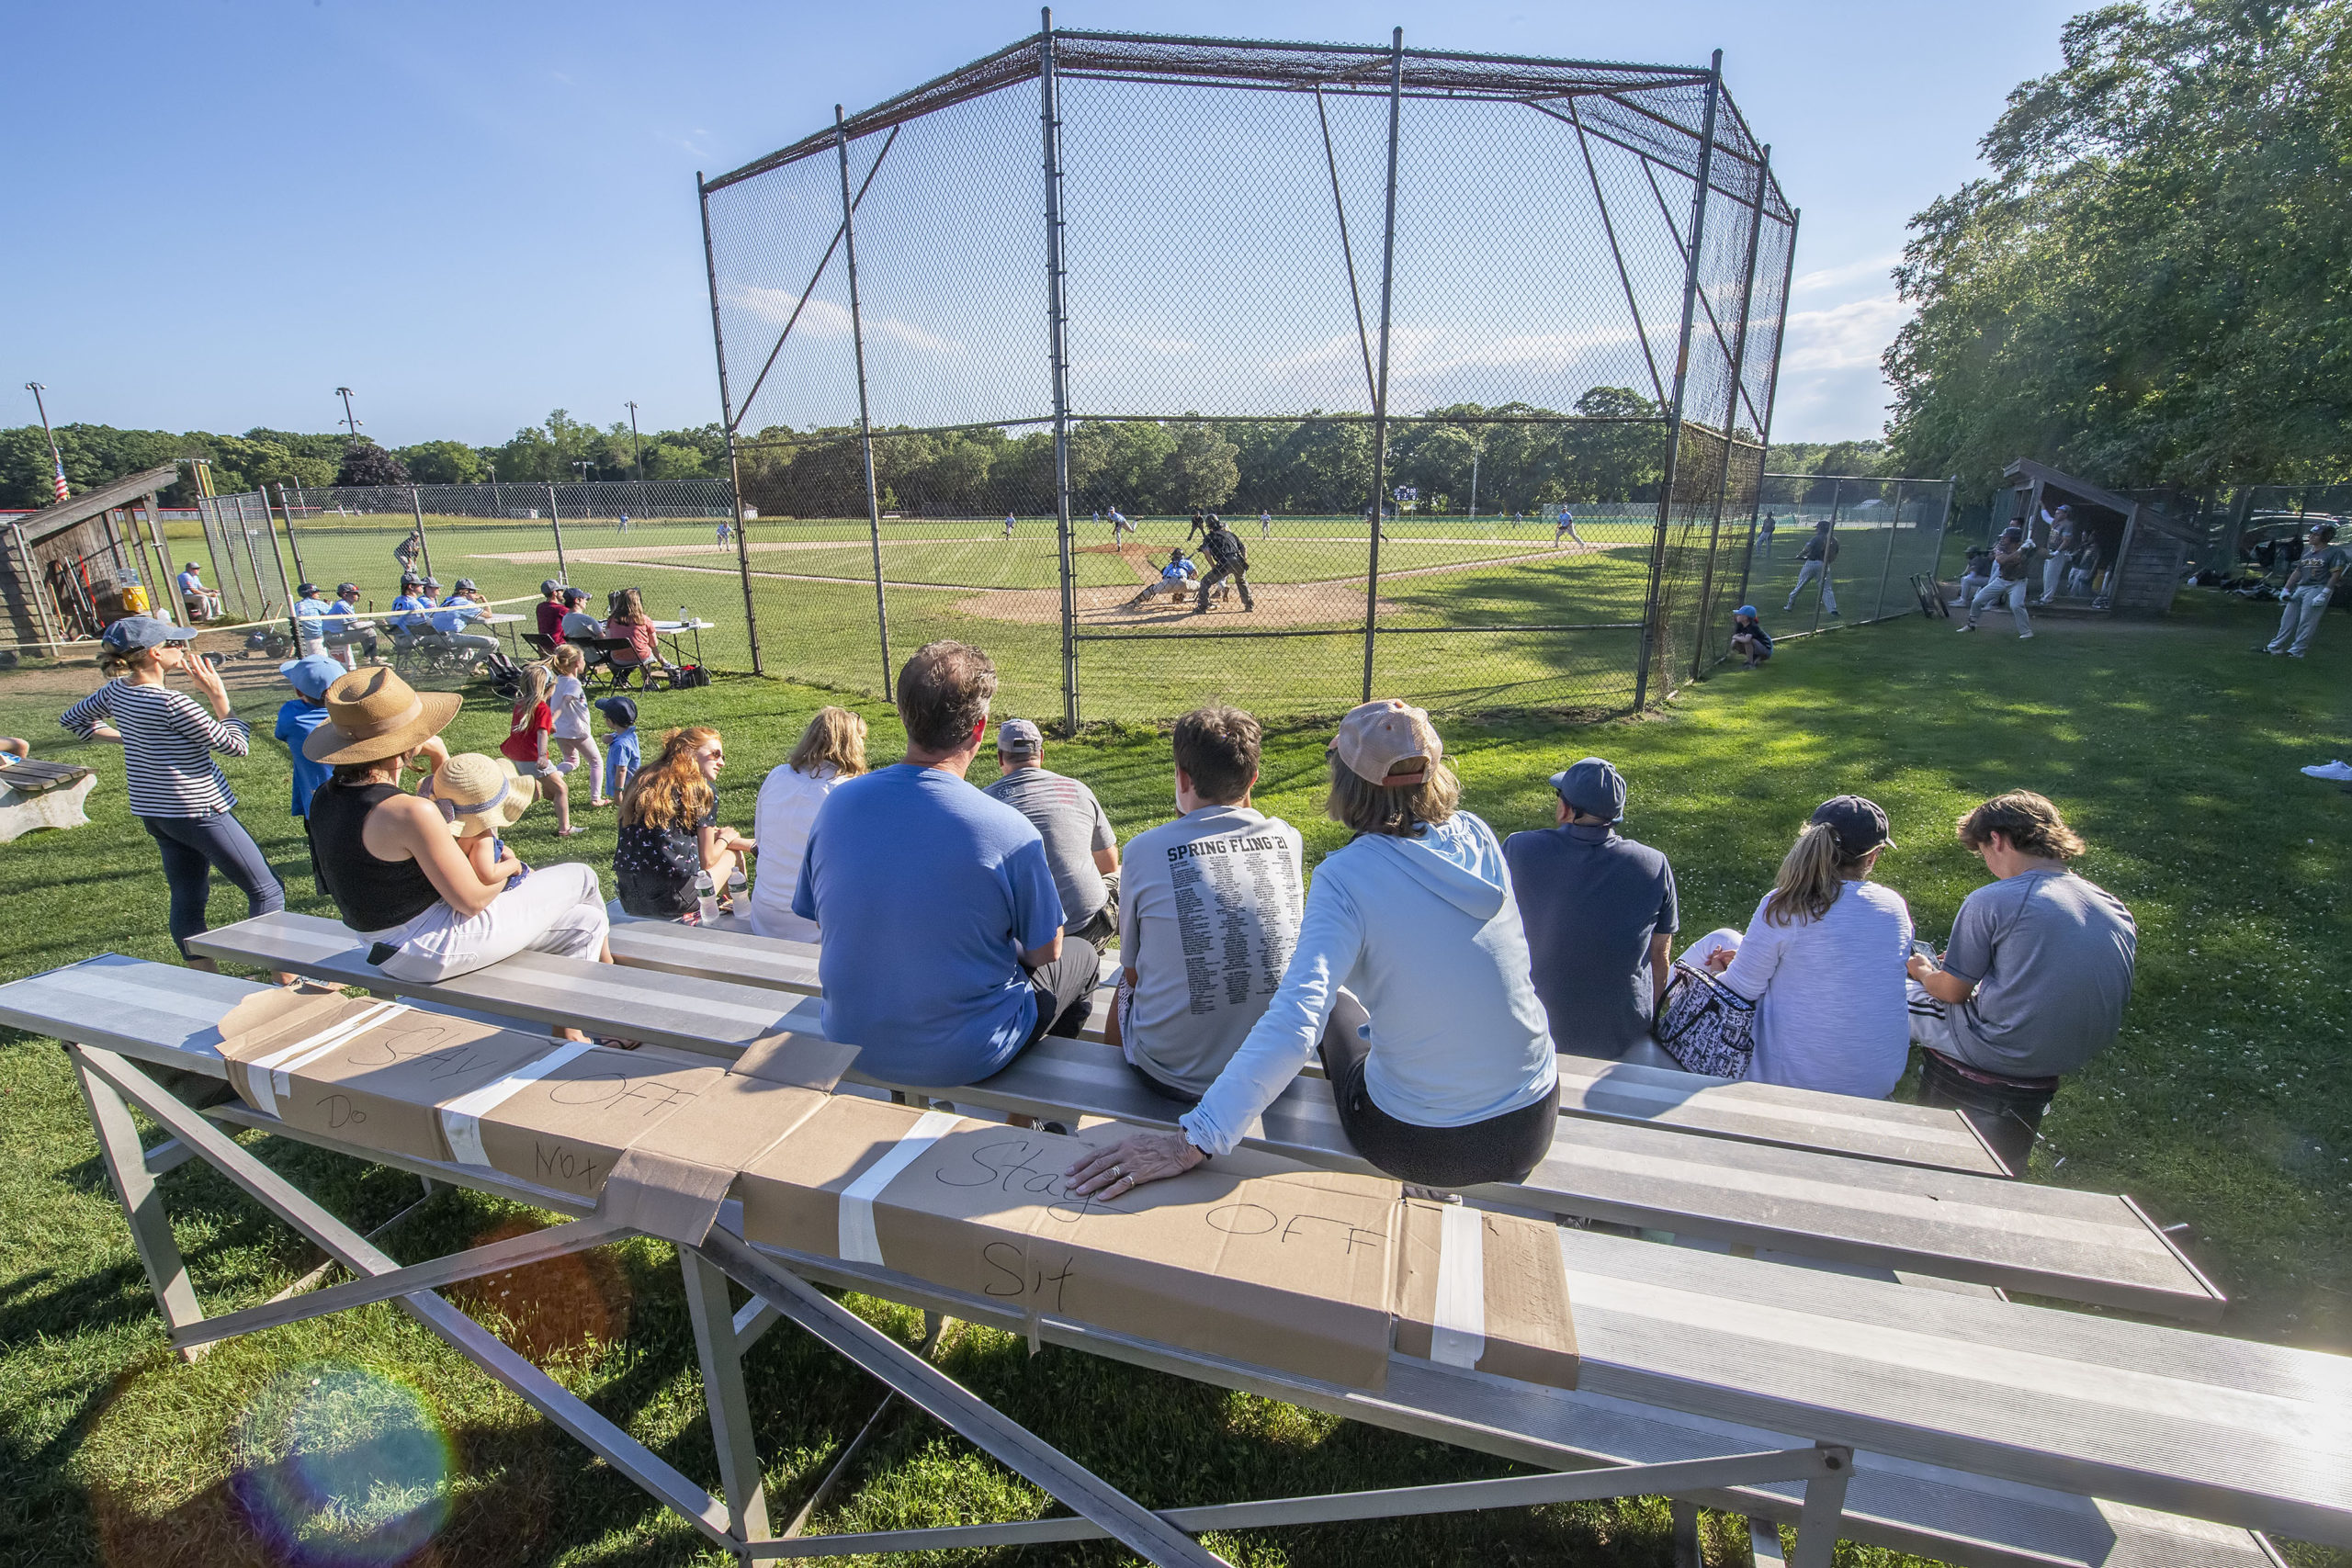 Fans watch as the Sag Harbor Whalers hosted the North Fork Ospreys at Mashashimuet Park on the opening day of the Hamptons Collegiate Baseball League this past Tuesday, June 15.